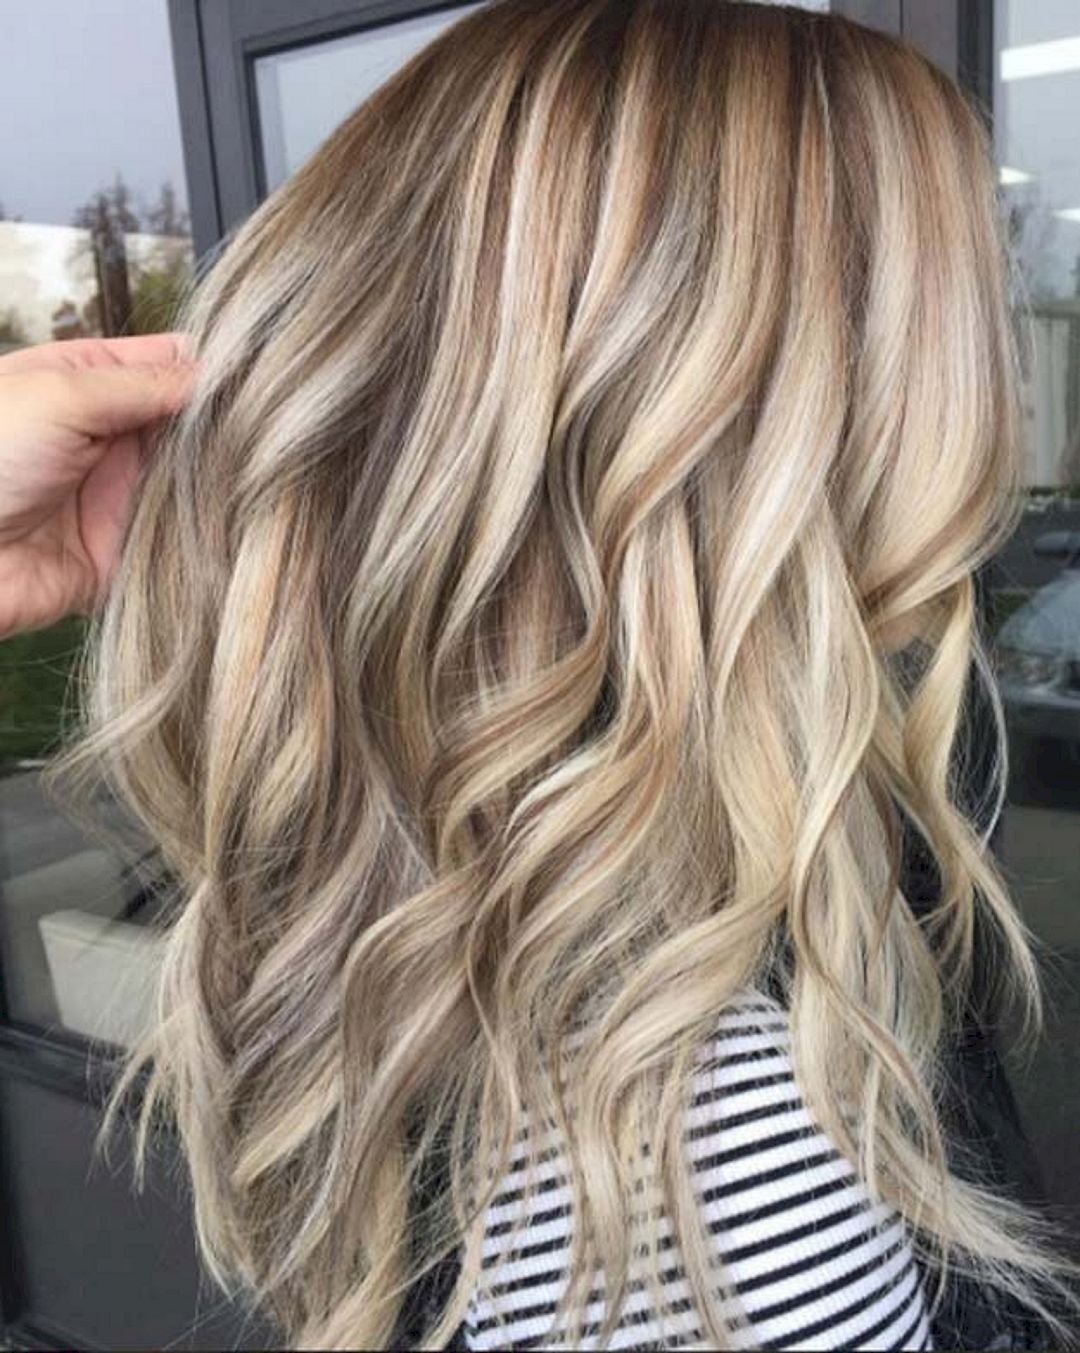 17 Stunning Blonde Hair Color Ideas You Have Got To See And Try